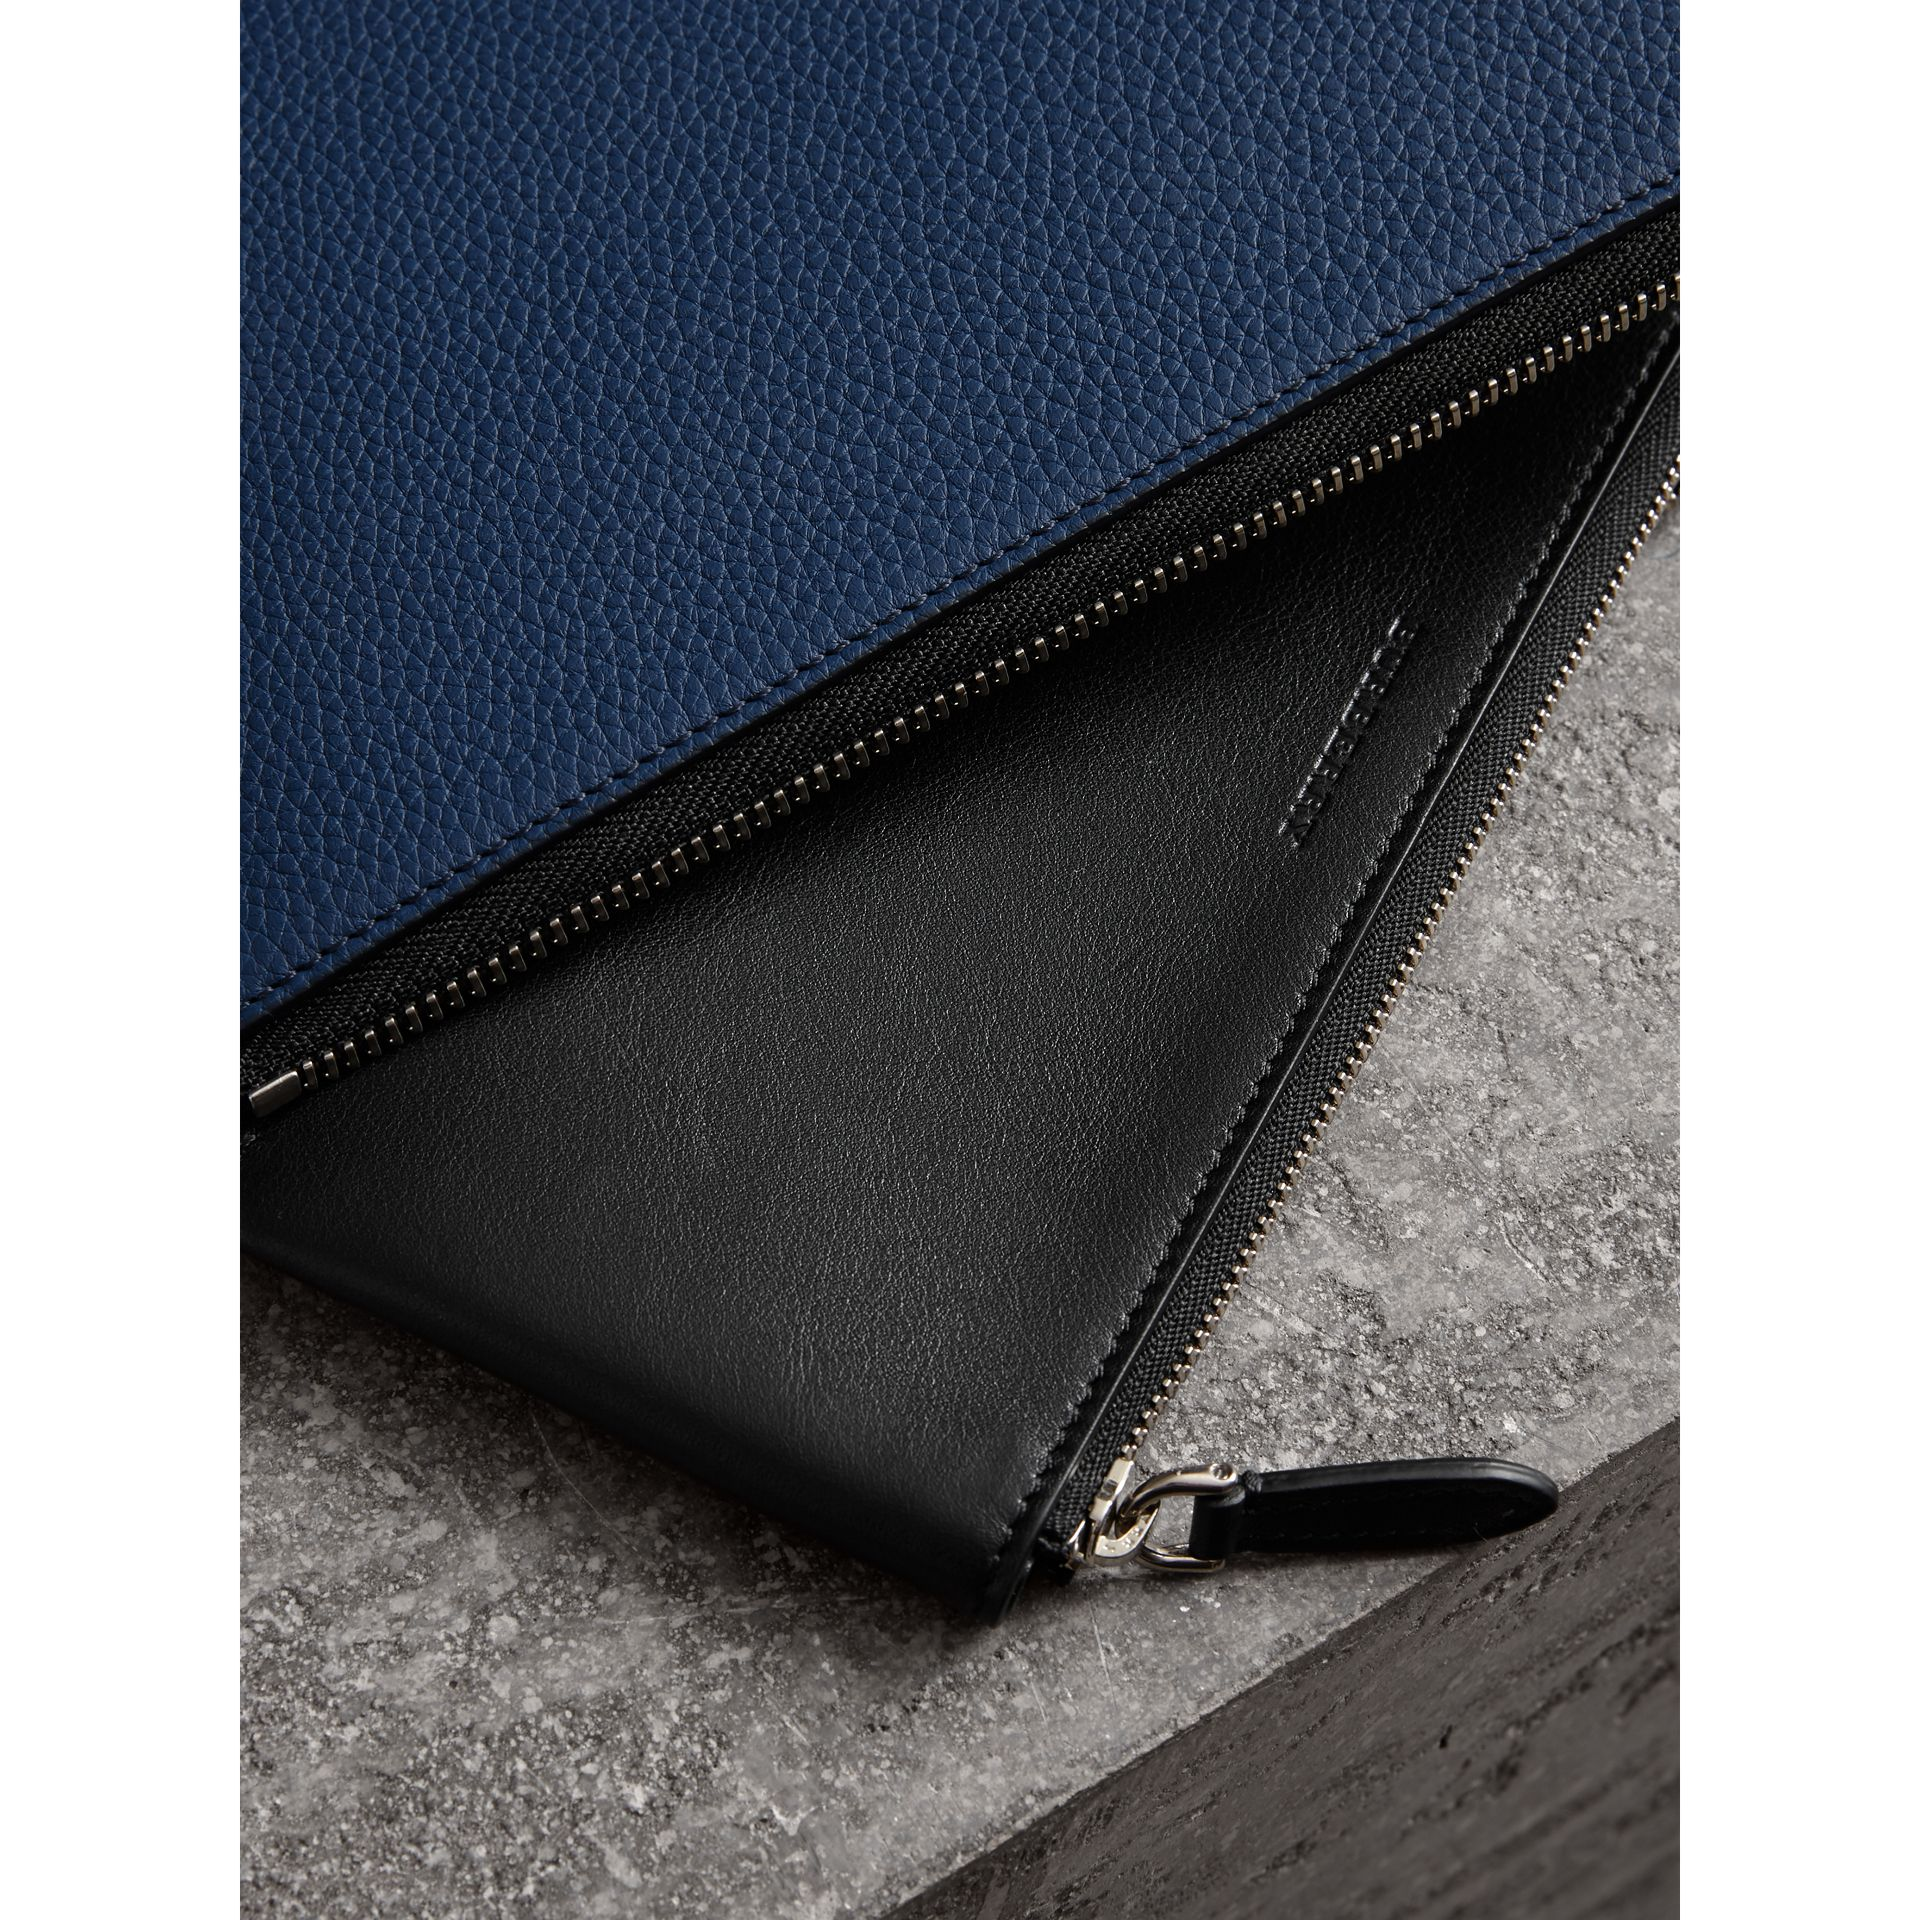 Two-tone Grainy Leather Travel Wallet in Bright Ultramarine - Men | Burberry - gallery image 4